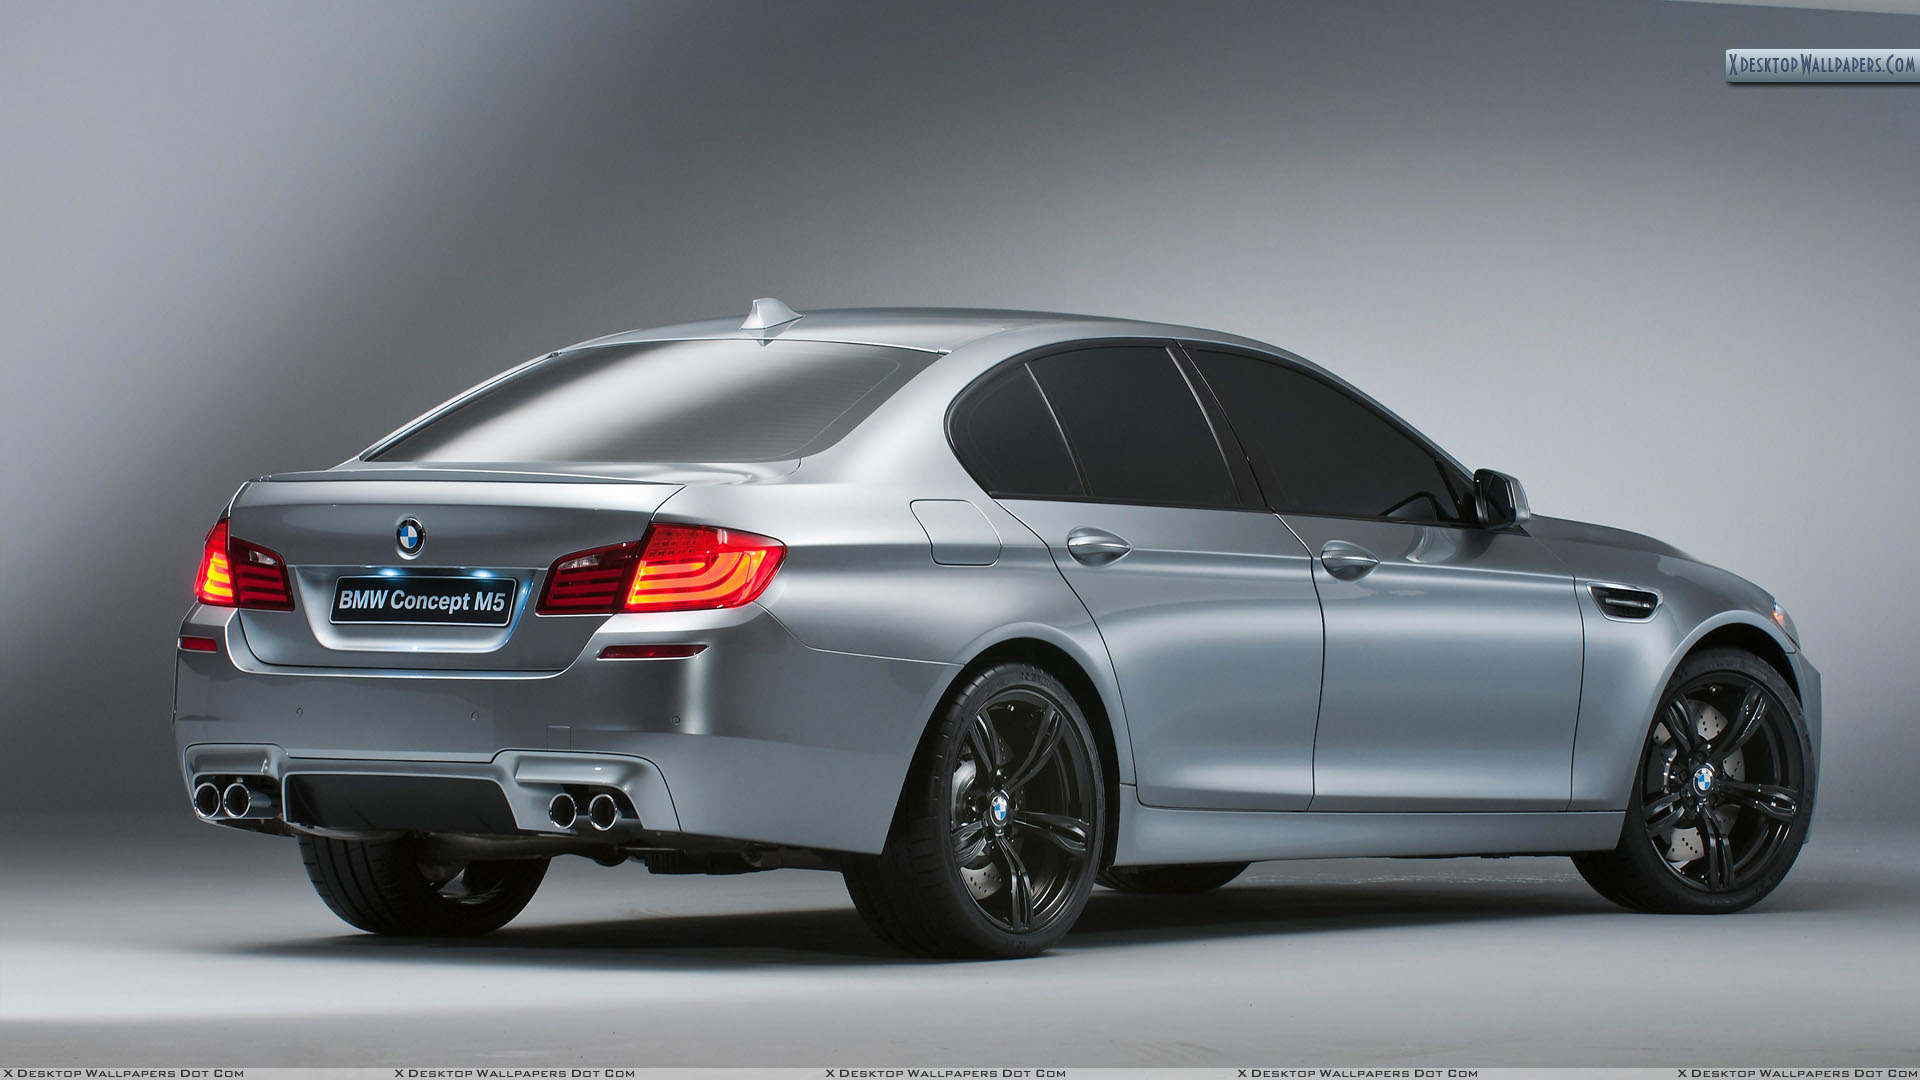 Side Back Pose In Grey Color 2012 Bmw M5 Concept Wallpaper